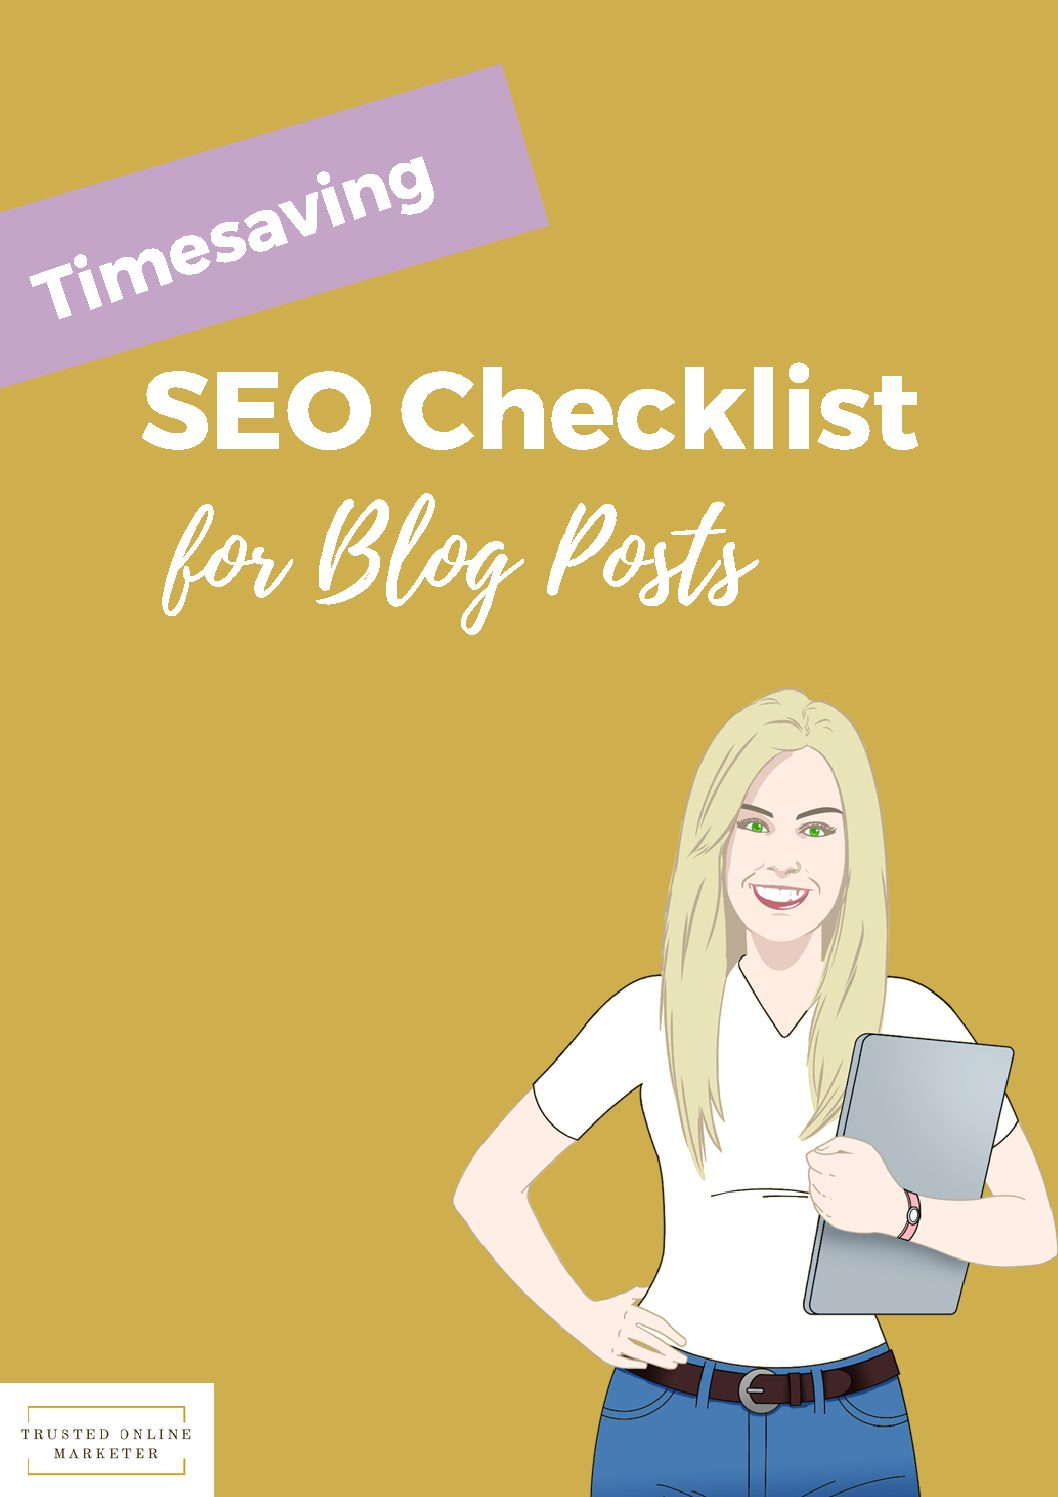 SEO Checklist for Blog Posts - Trusted Online Marketer